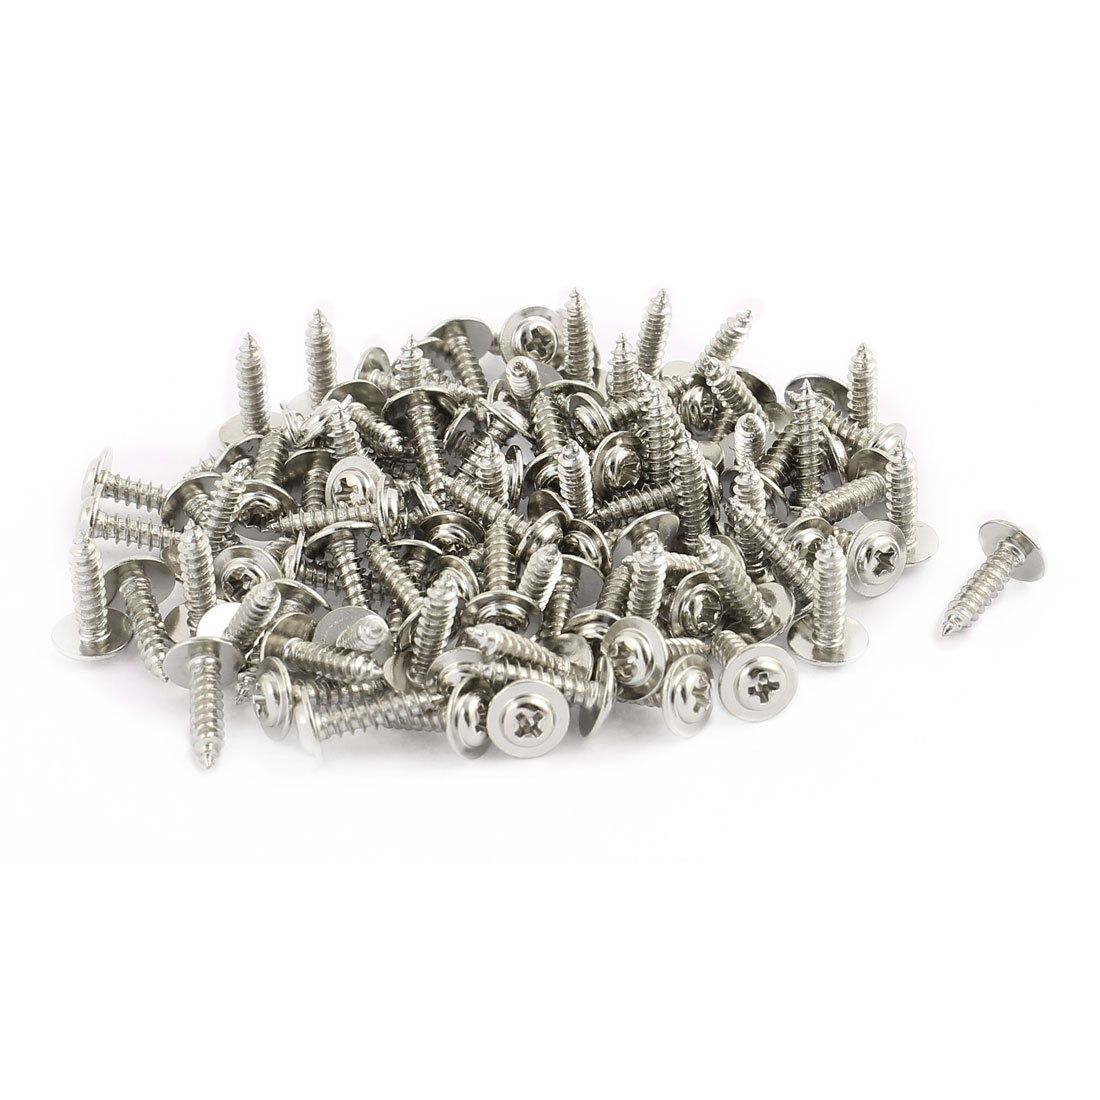 100pcs 10x2.5 Stainless Steel Round Head Self-Tapping Screw with Washer Fastener